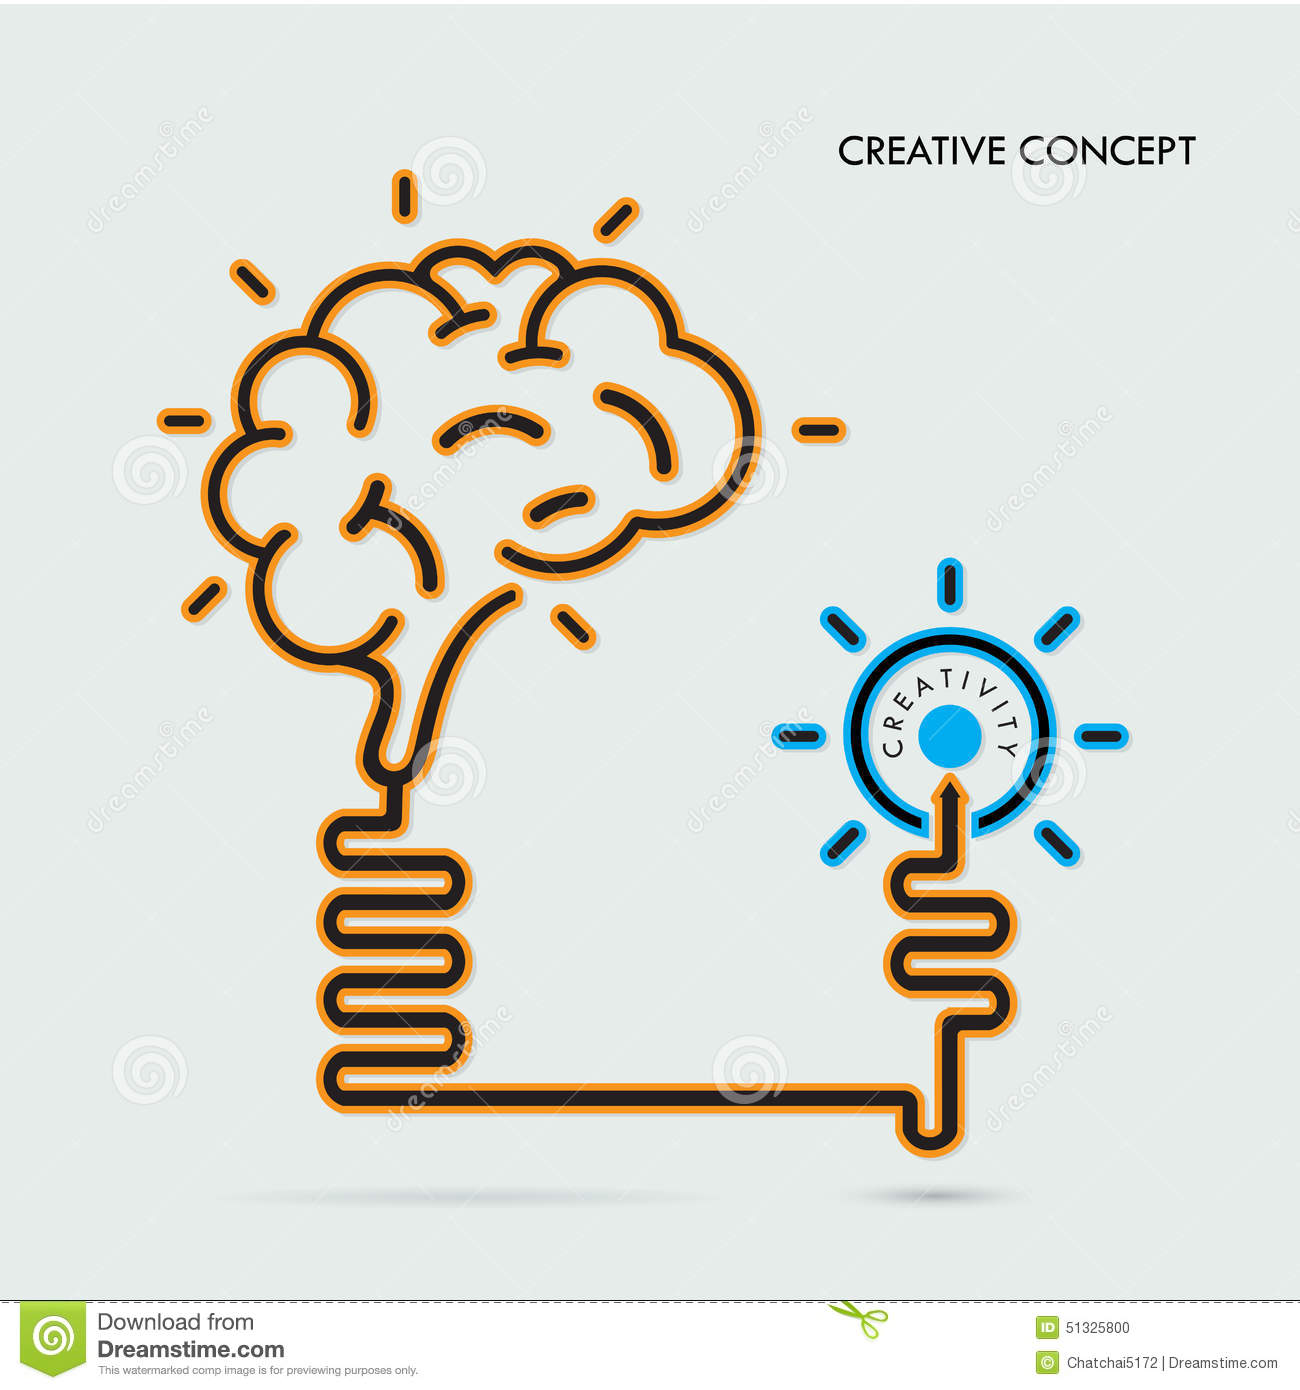 Poster design education - Creative Brain Idea And Light Bulb Concept Design For Poster Fl Stock Photo